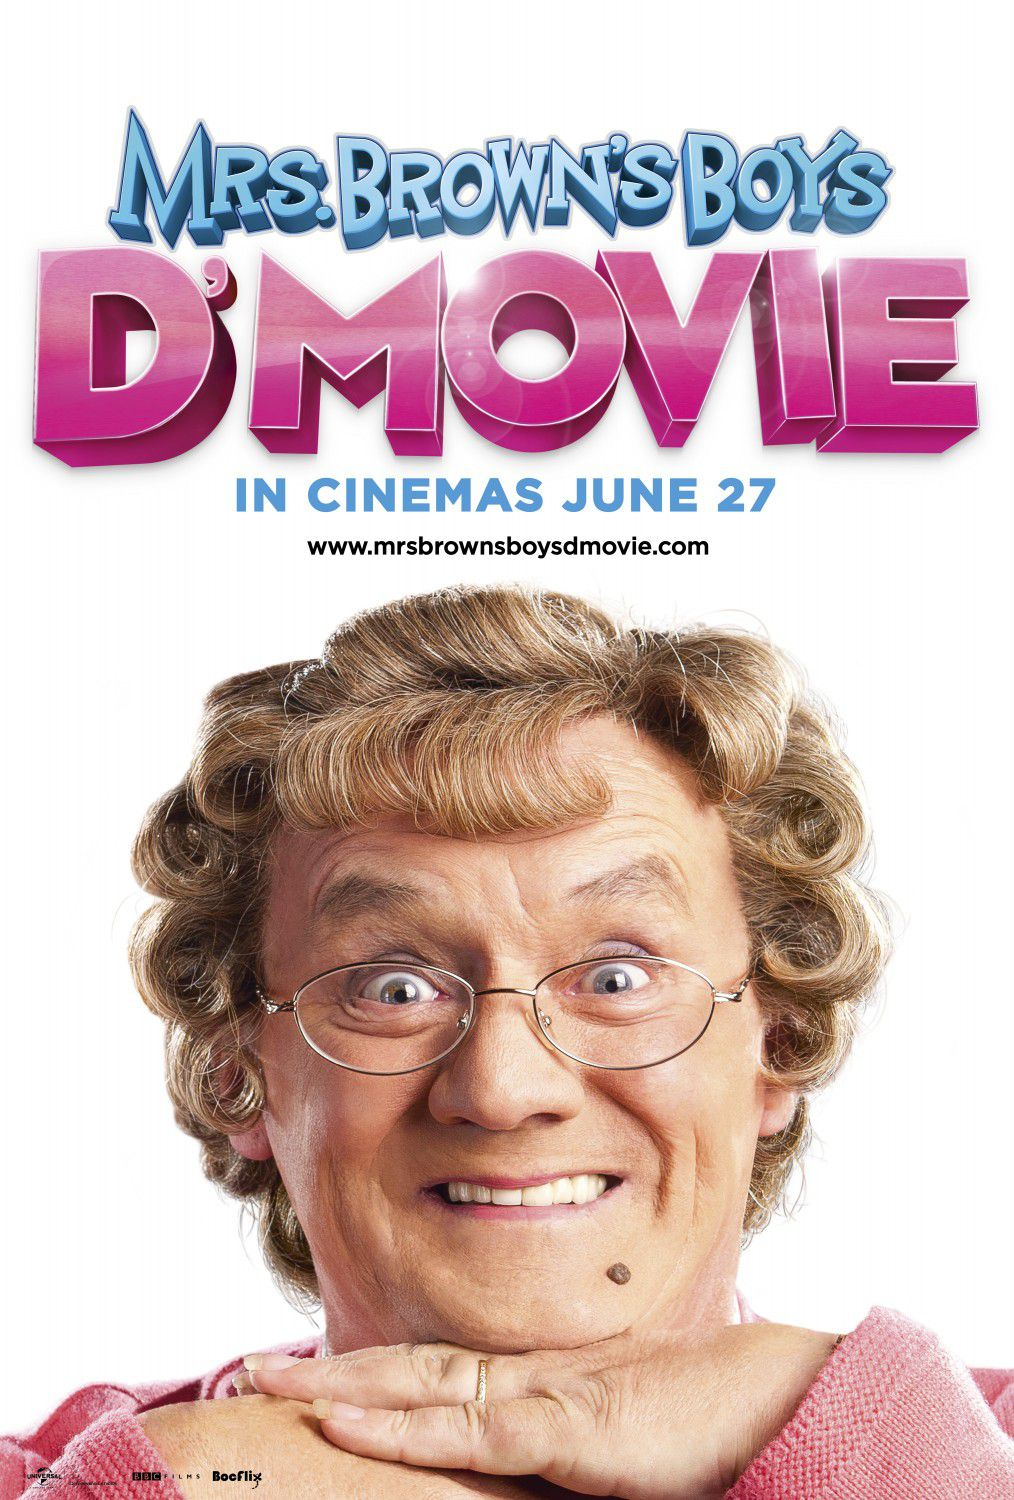 Mrs Browns Boys D Movie - film poster - comedy